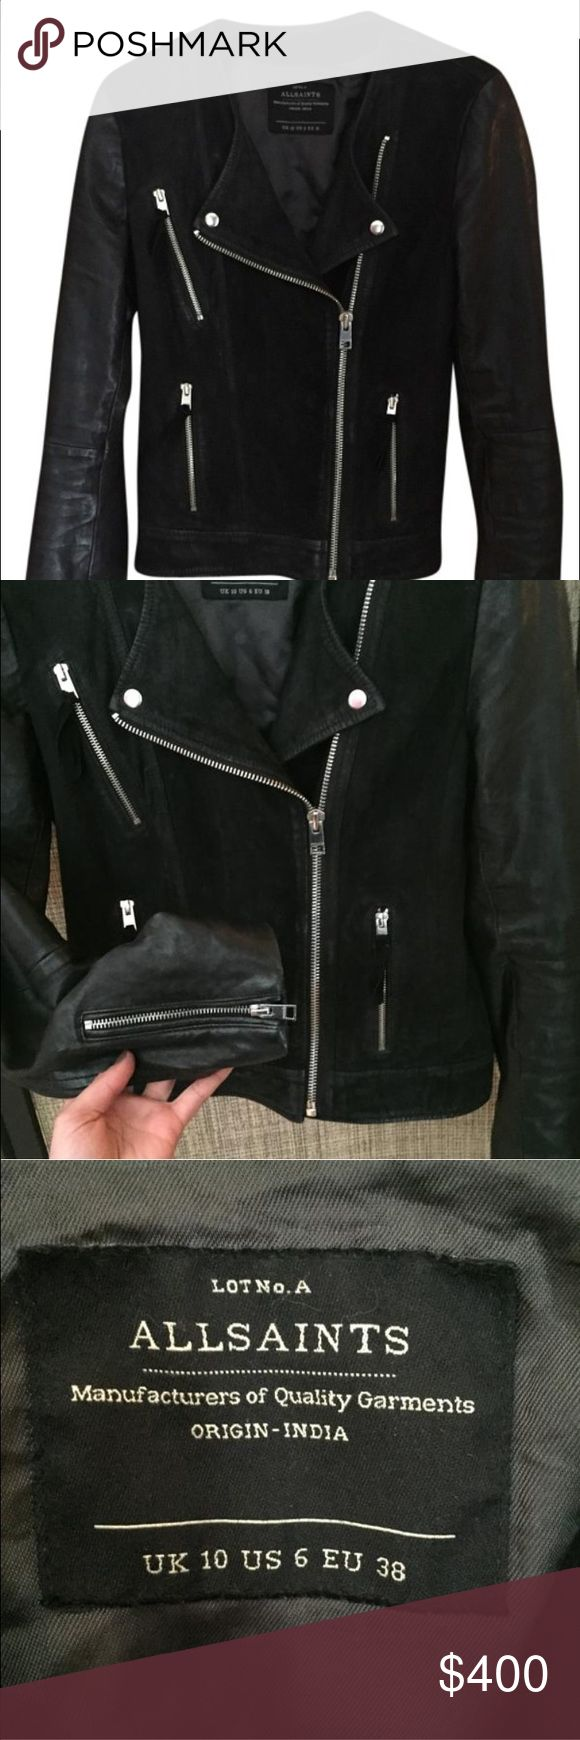 AllSaints Connell Leather jacket size 6 (s) Gently used leather and suede Connell leather allsaints jacket. All Saints Jackets & Coats